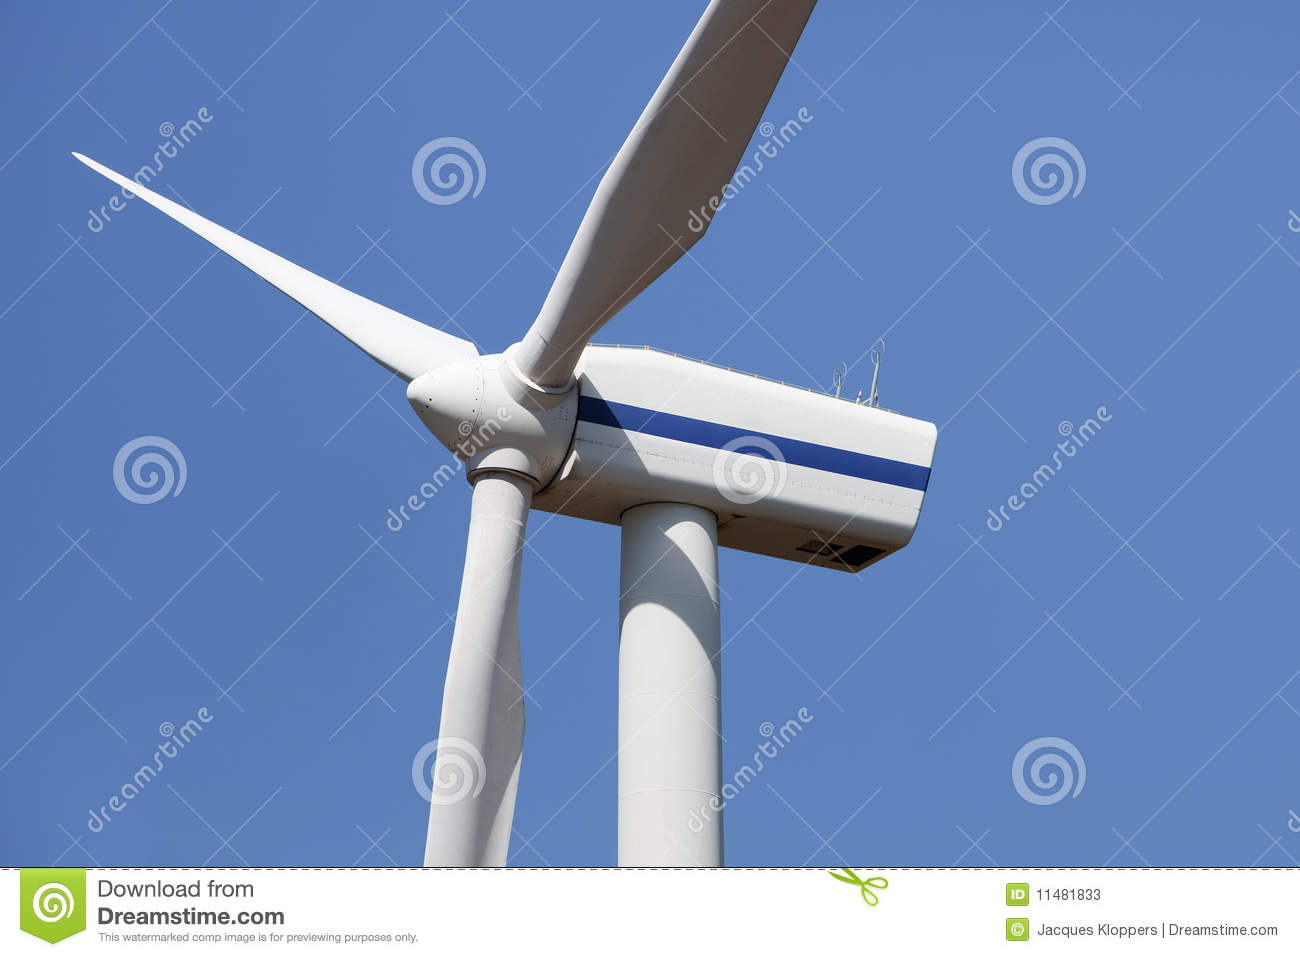 Propeller Turbine Design submited images.